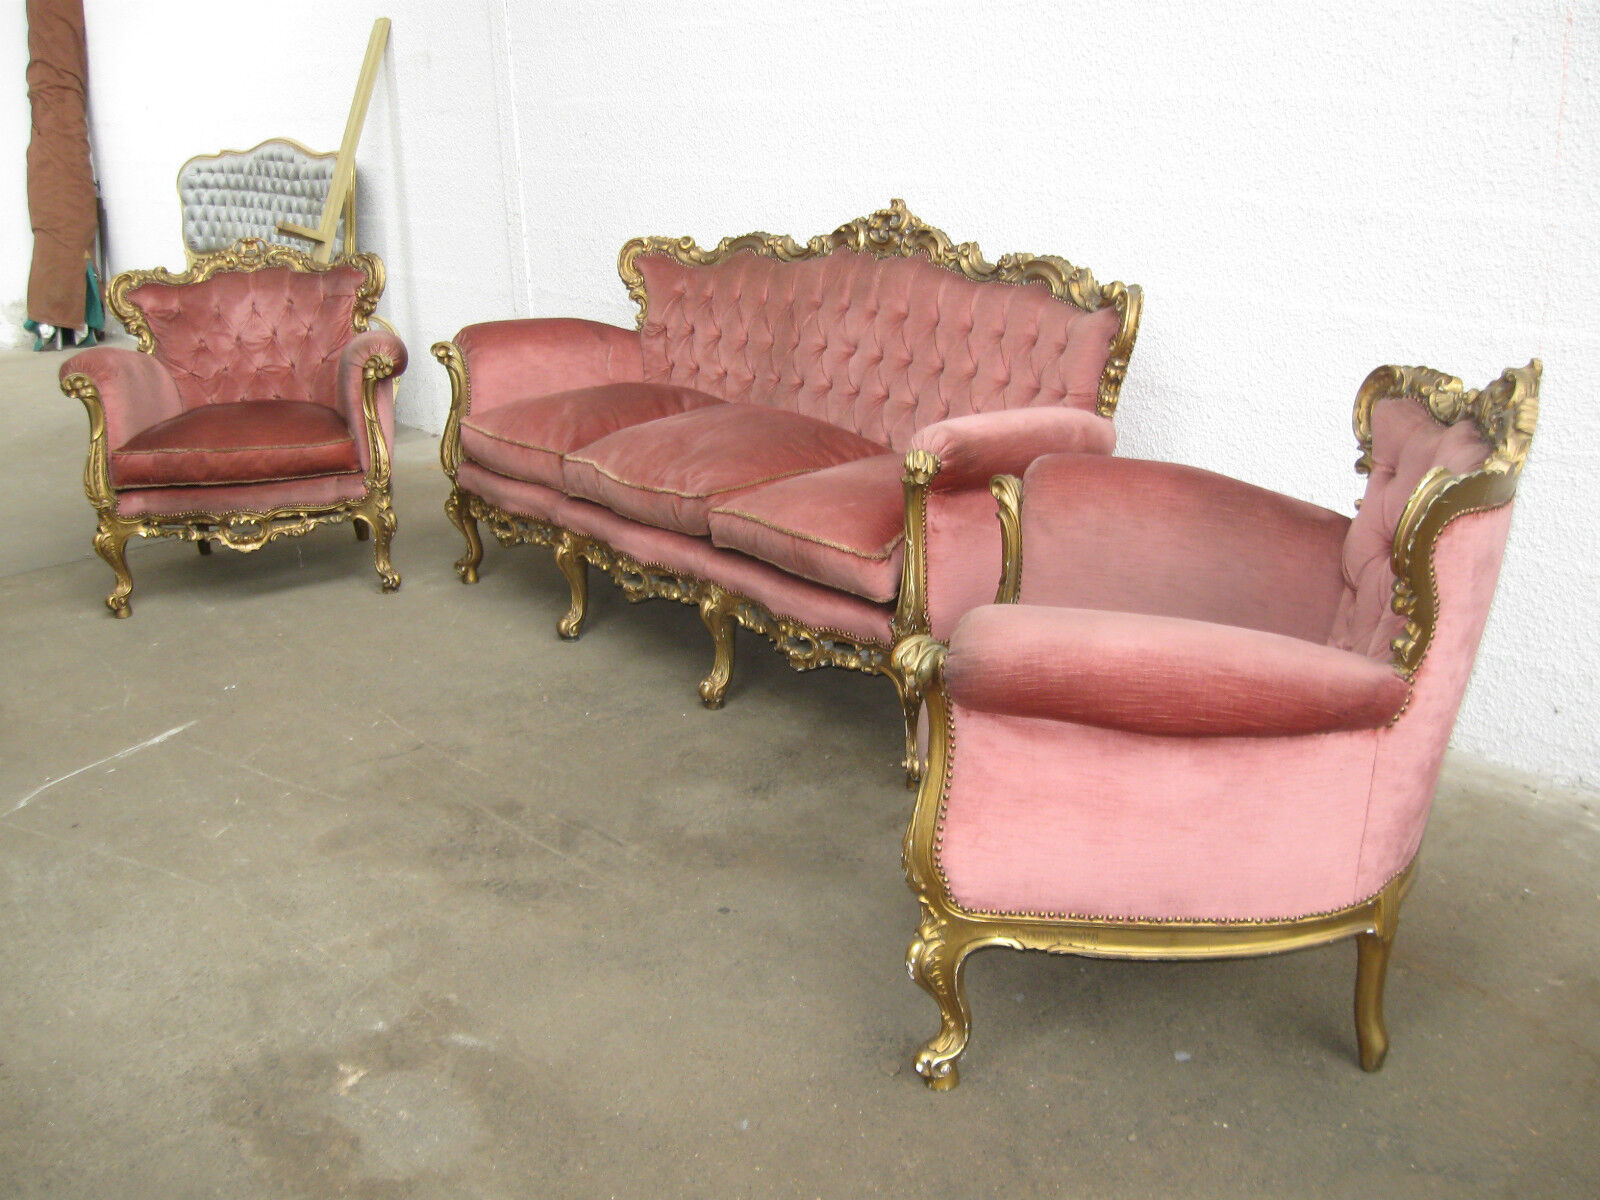 ancien salon 3 pi ces de style louis xv en bois dor tissu rose canap fauteuils eur 875 00. Black Bedroom Furniture Sets. Home Design Ideas